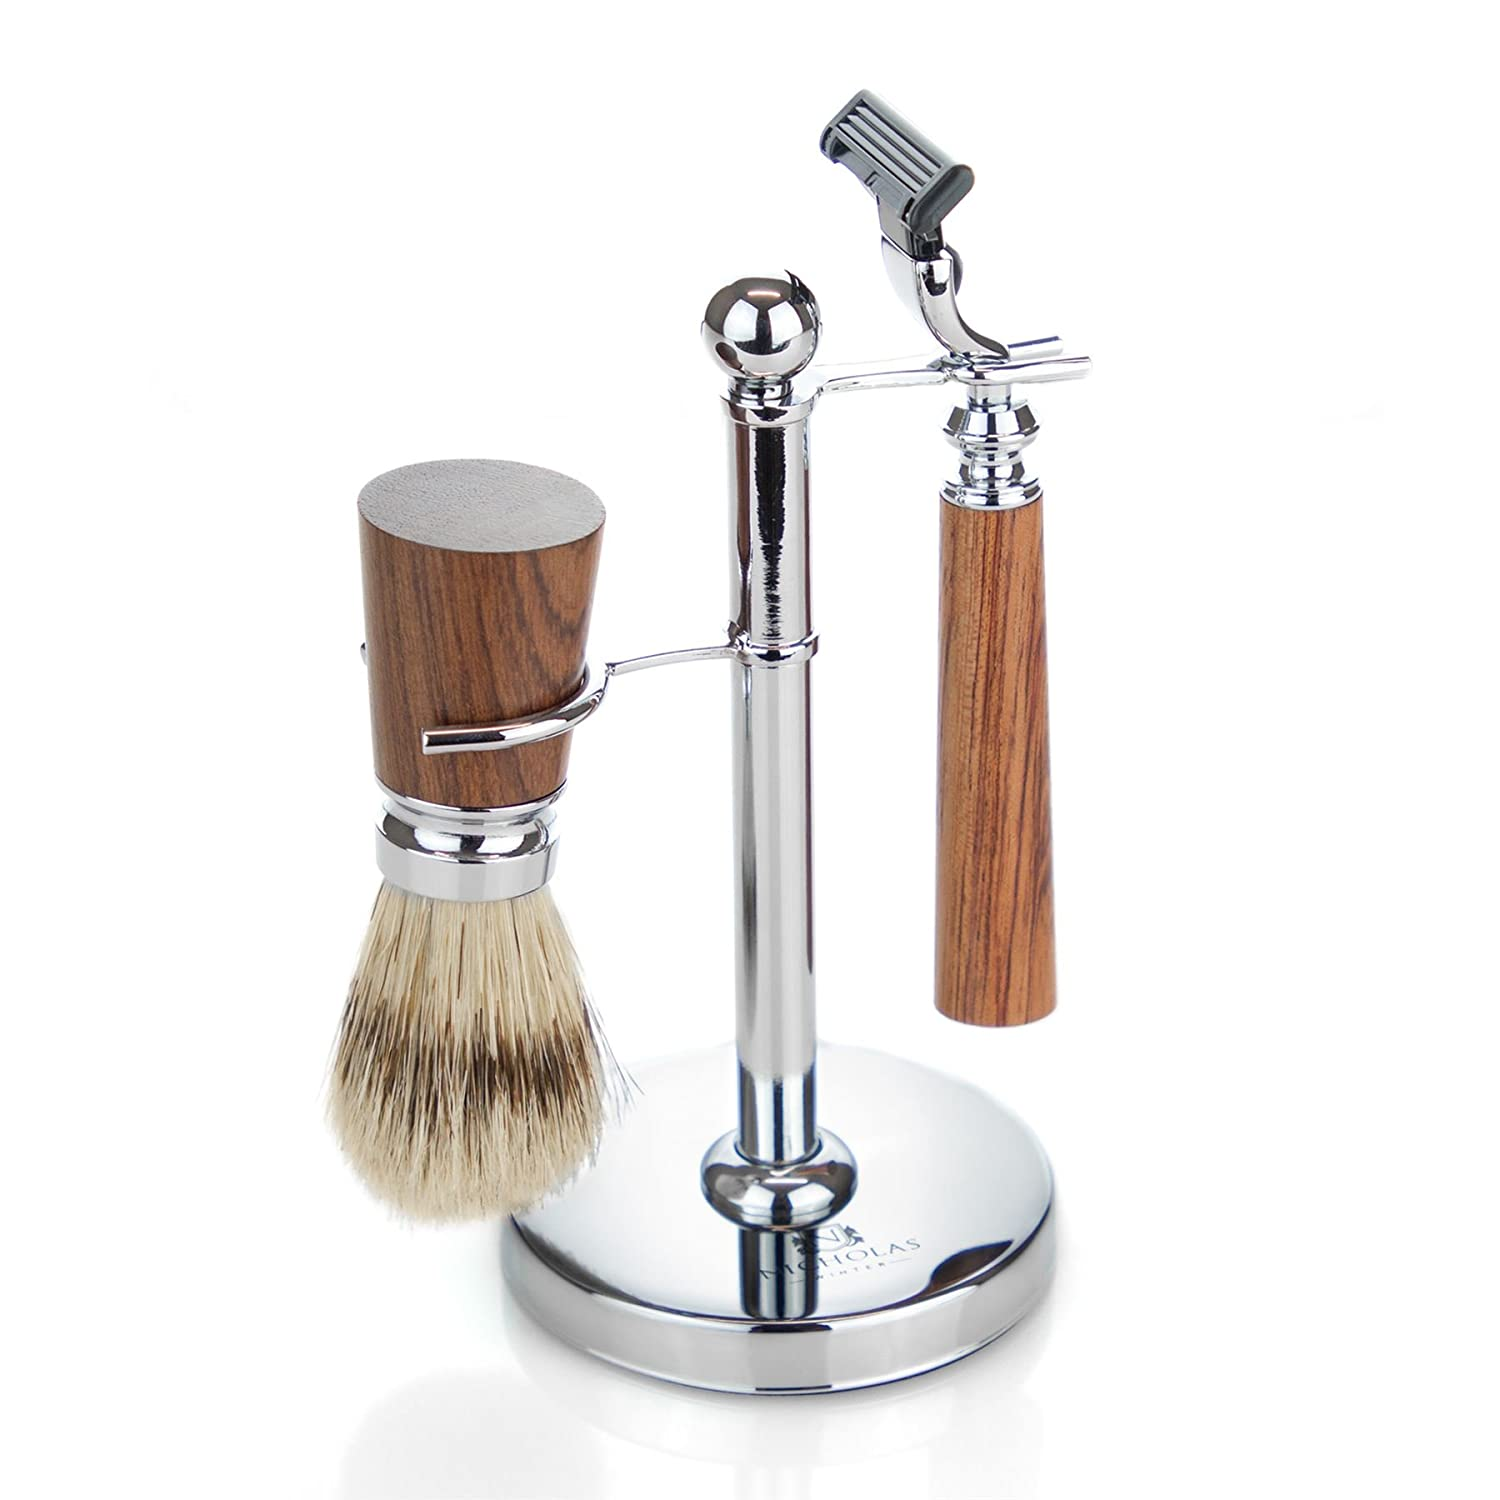 Nicholas Winter Shaving Set with Brush and Stand - Compatible with Gillette Mach 3 - Traditional Style in Brown